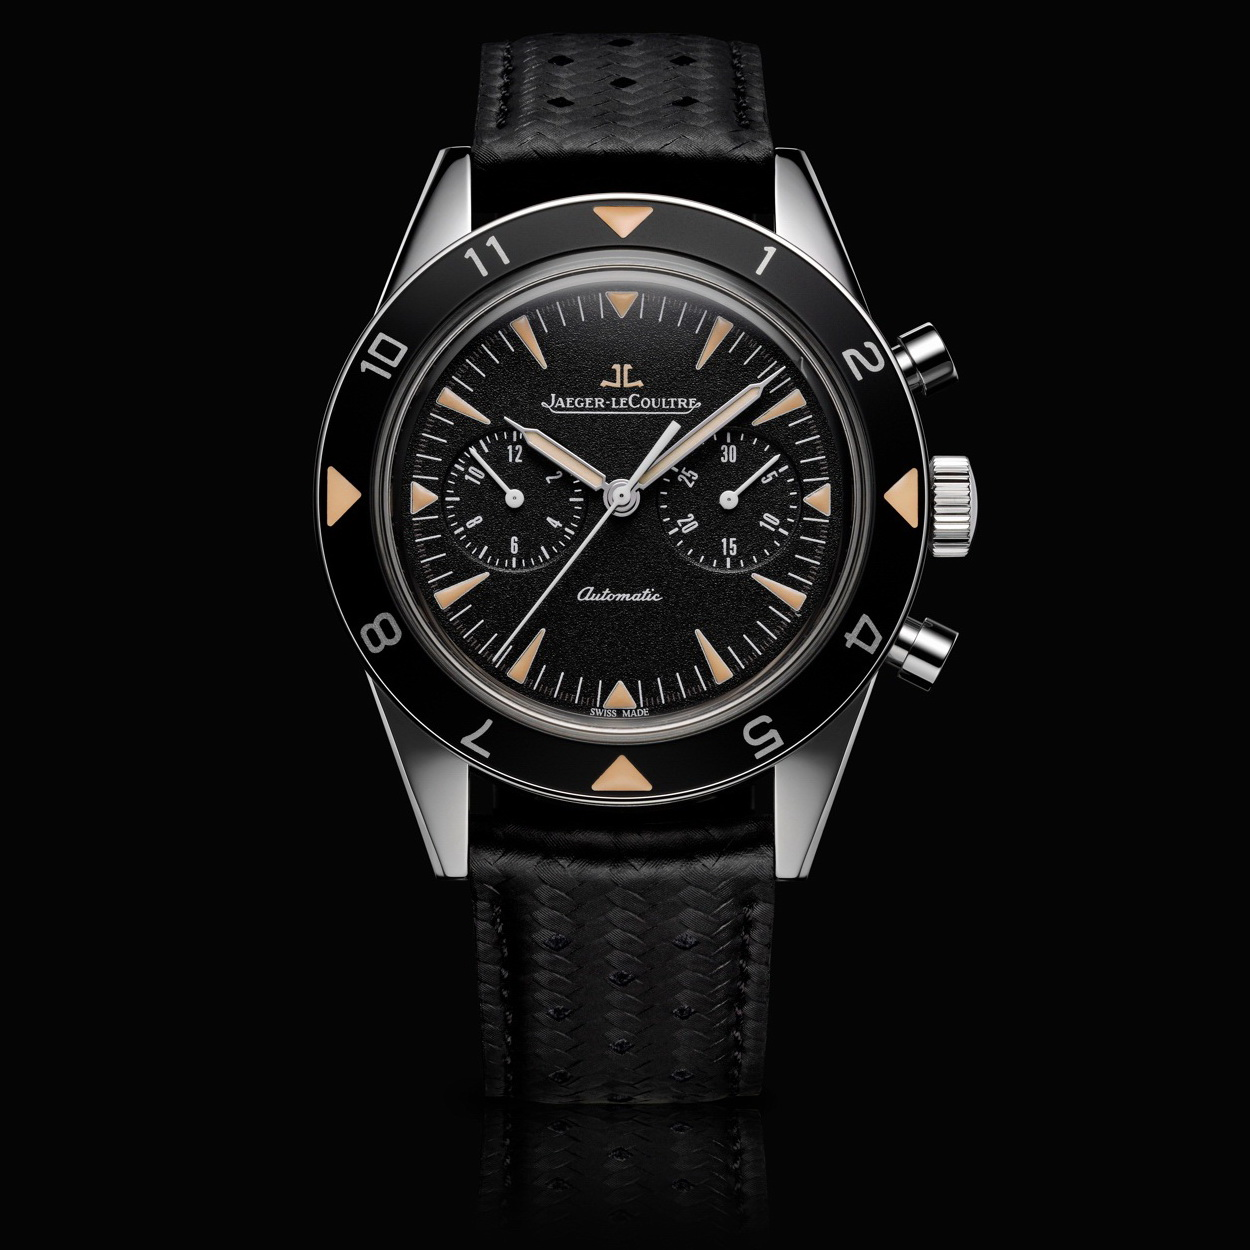 collection patek philippe a lange sohne jaeger